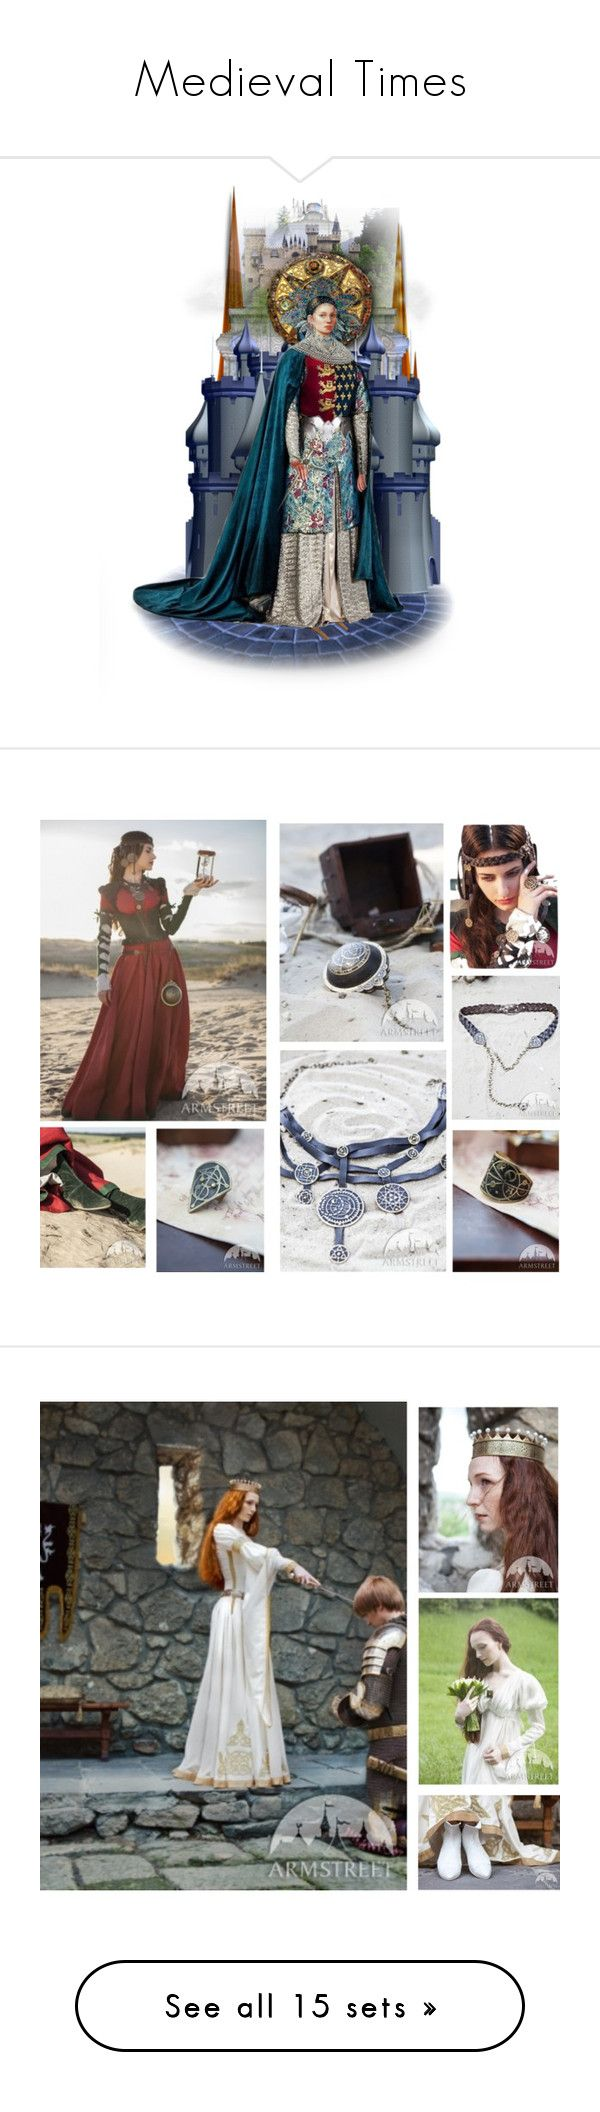 """""""Medieval Times"""" by enchanticals ❤ liked on Polyvore featuring art, beauty, Sophie Theallet, Notte by Marchesa, AllSaints, Nearly Natural, renaissance, medieval, artwork and René Caovilla"""